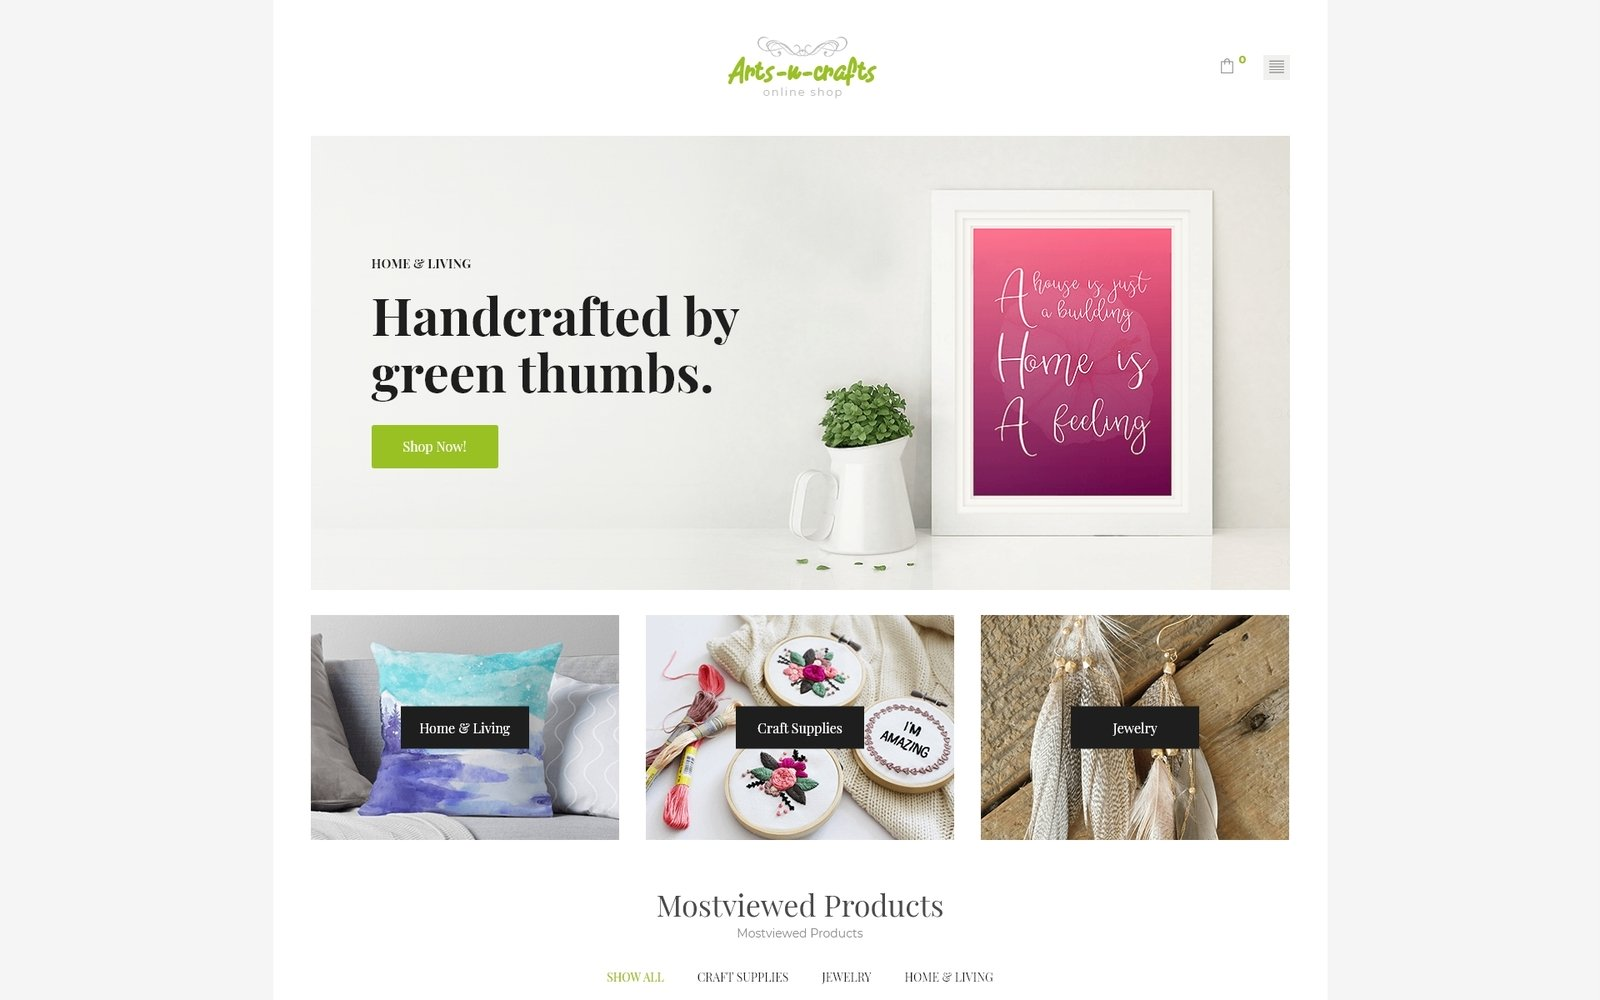 """Arts-n-crafts - Handmade Art Elementor"" - адаптивний WooCommerce шаблон №71971"